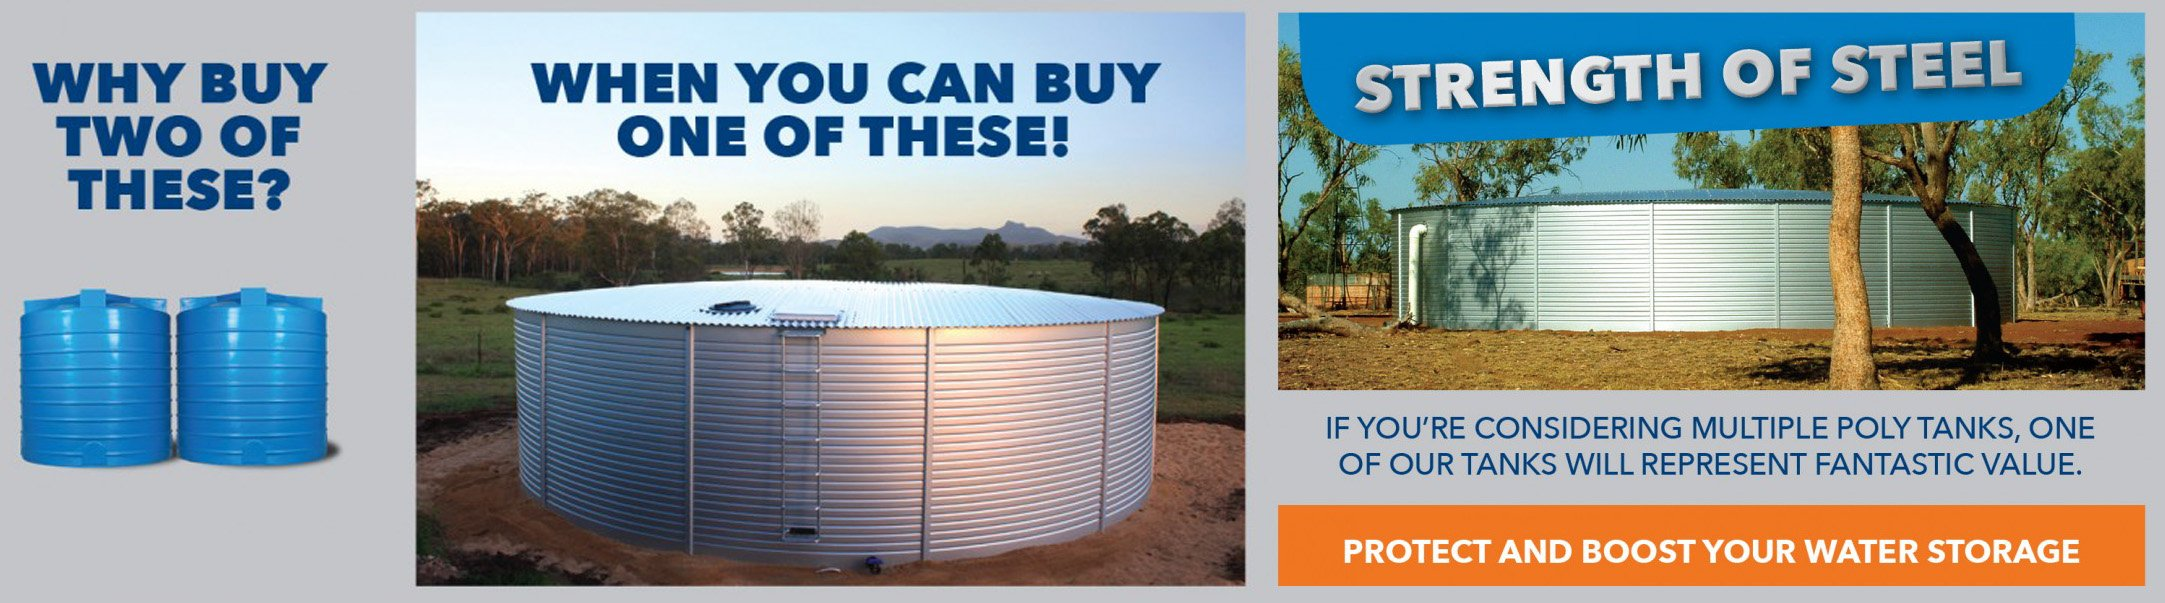 Pioneer Water Tanks why buy poly tanks